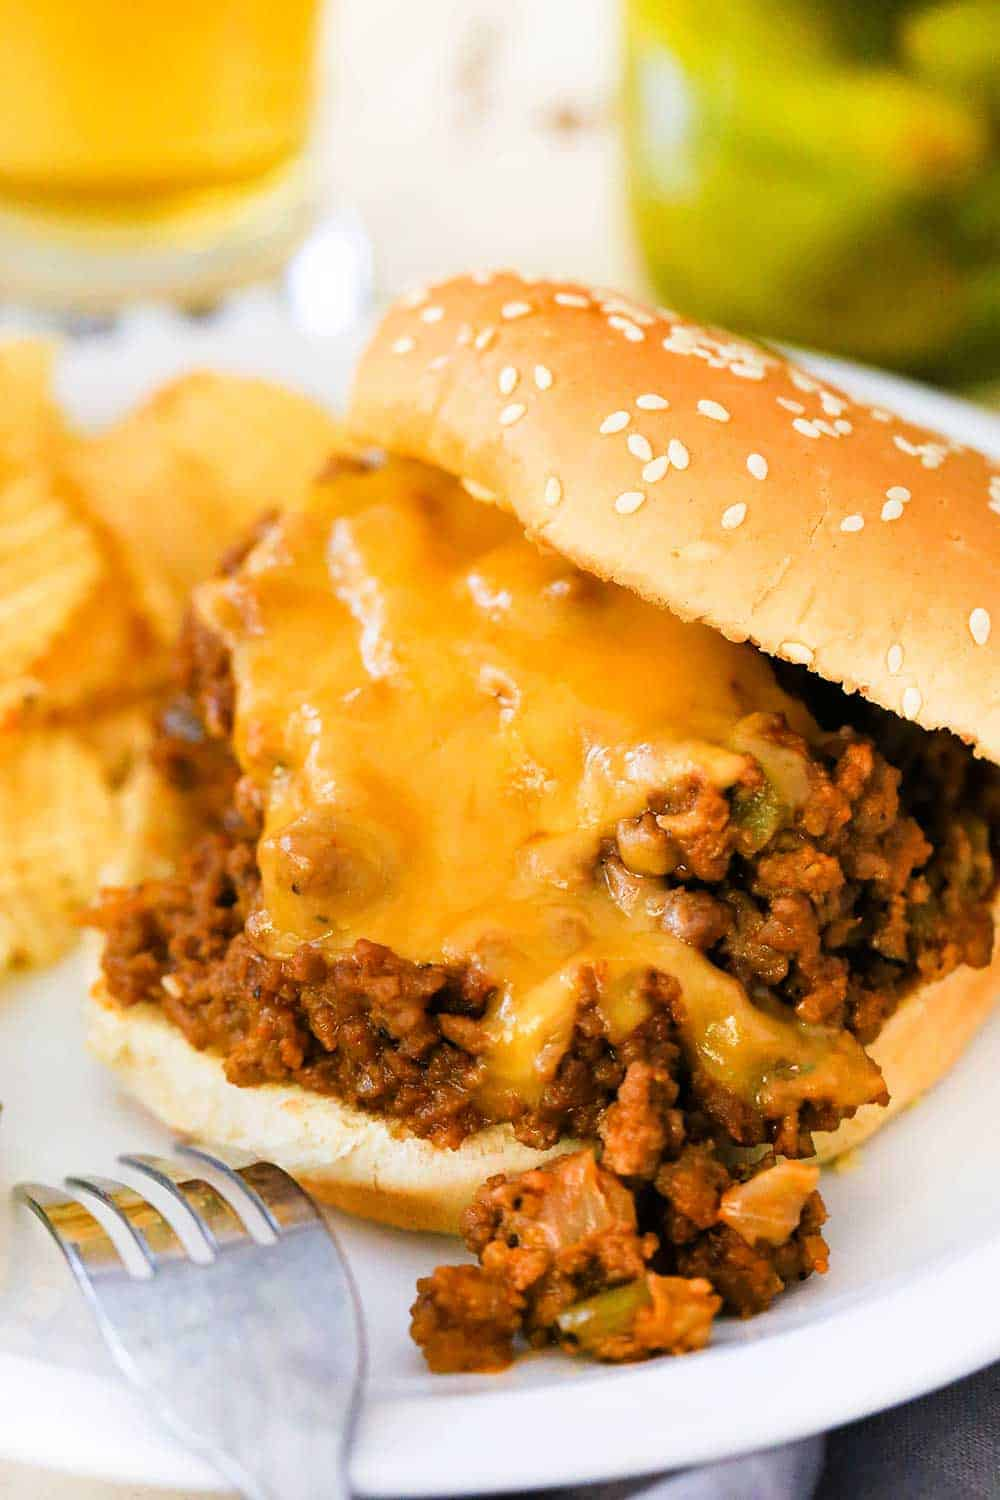 Slammin' Sloppy Joes